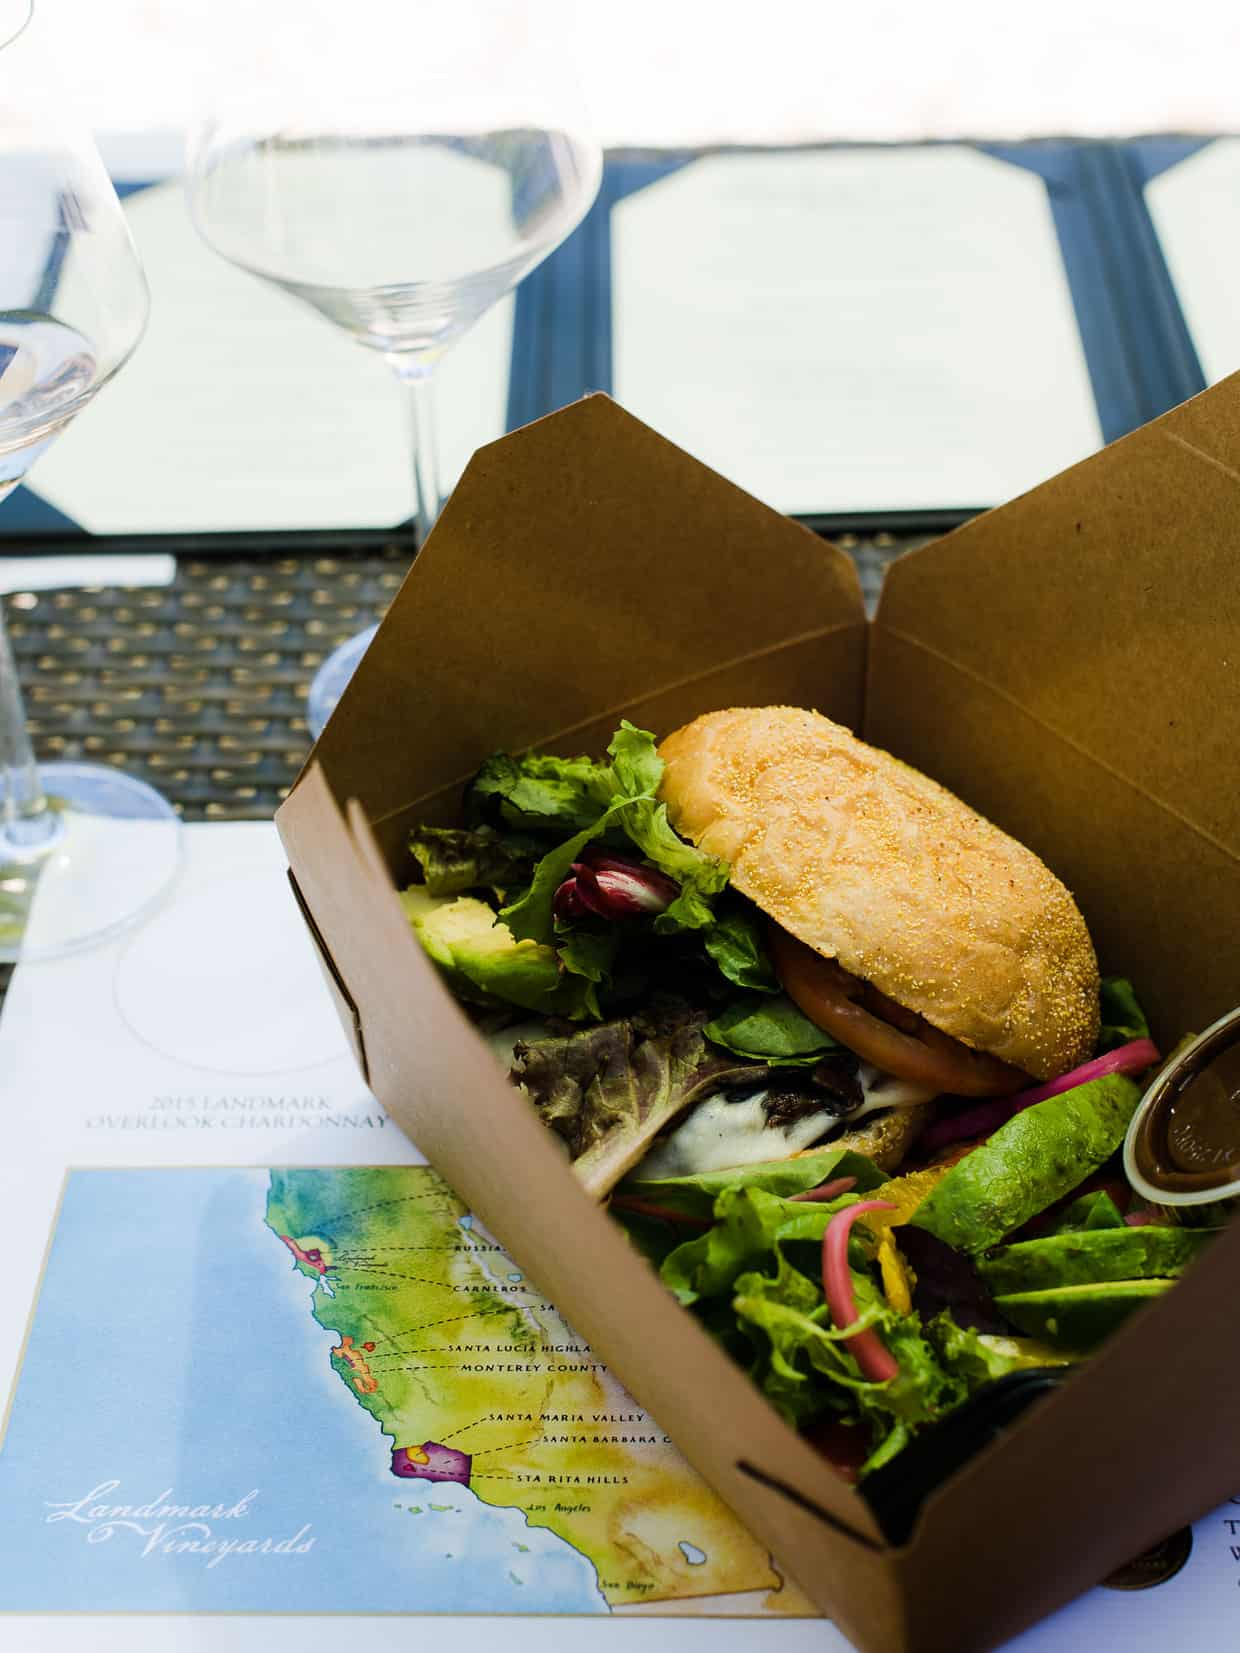 A portobello mushroom burger in a cardboard takeout box.